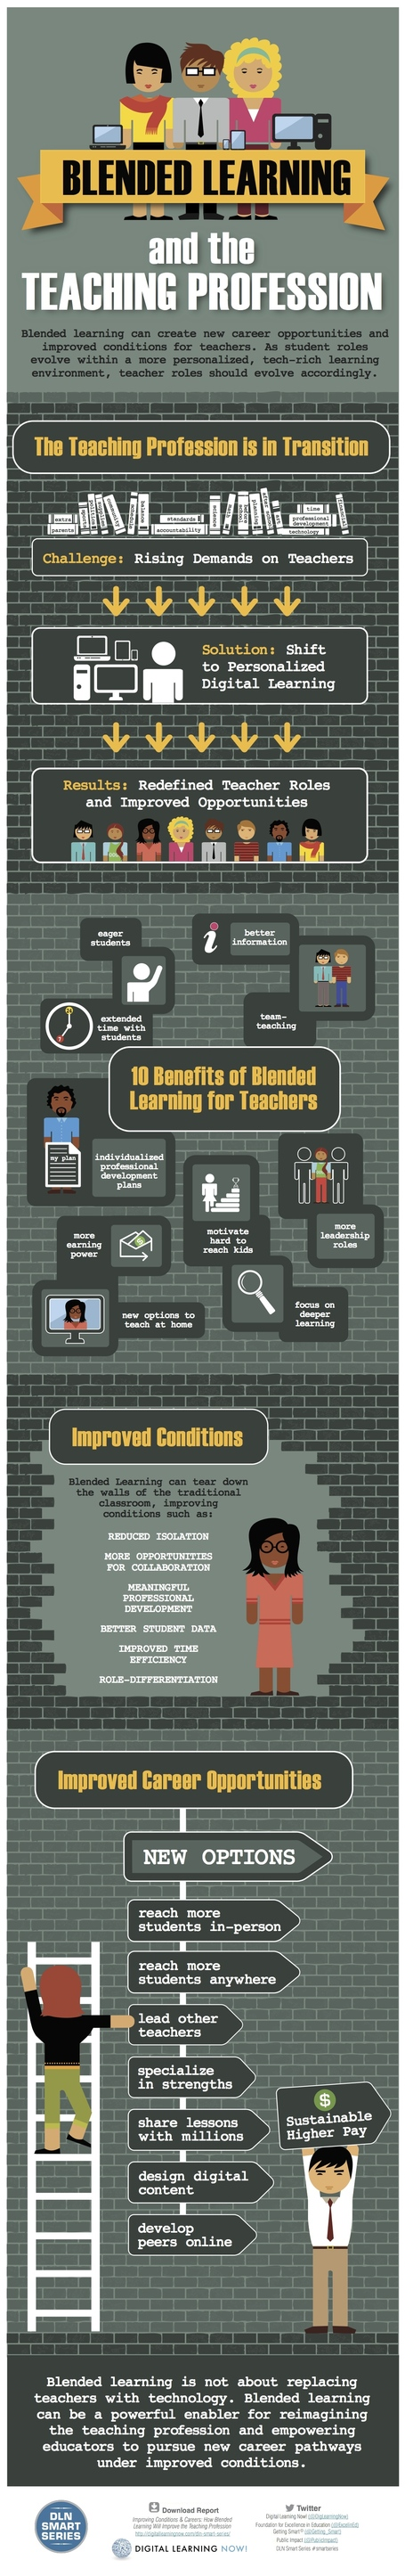 Blended Learning & The Teaching Profession [Infographic] | ENT | Scoop.it